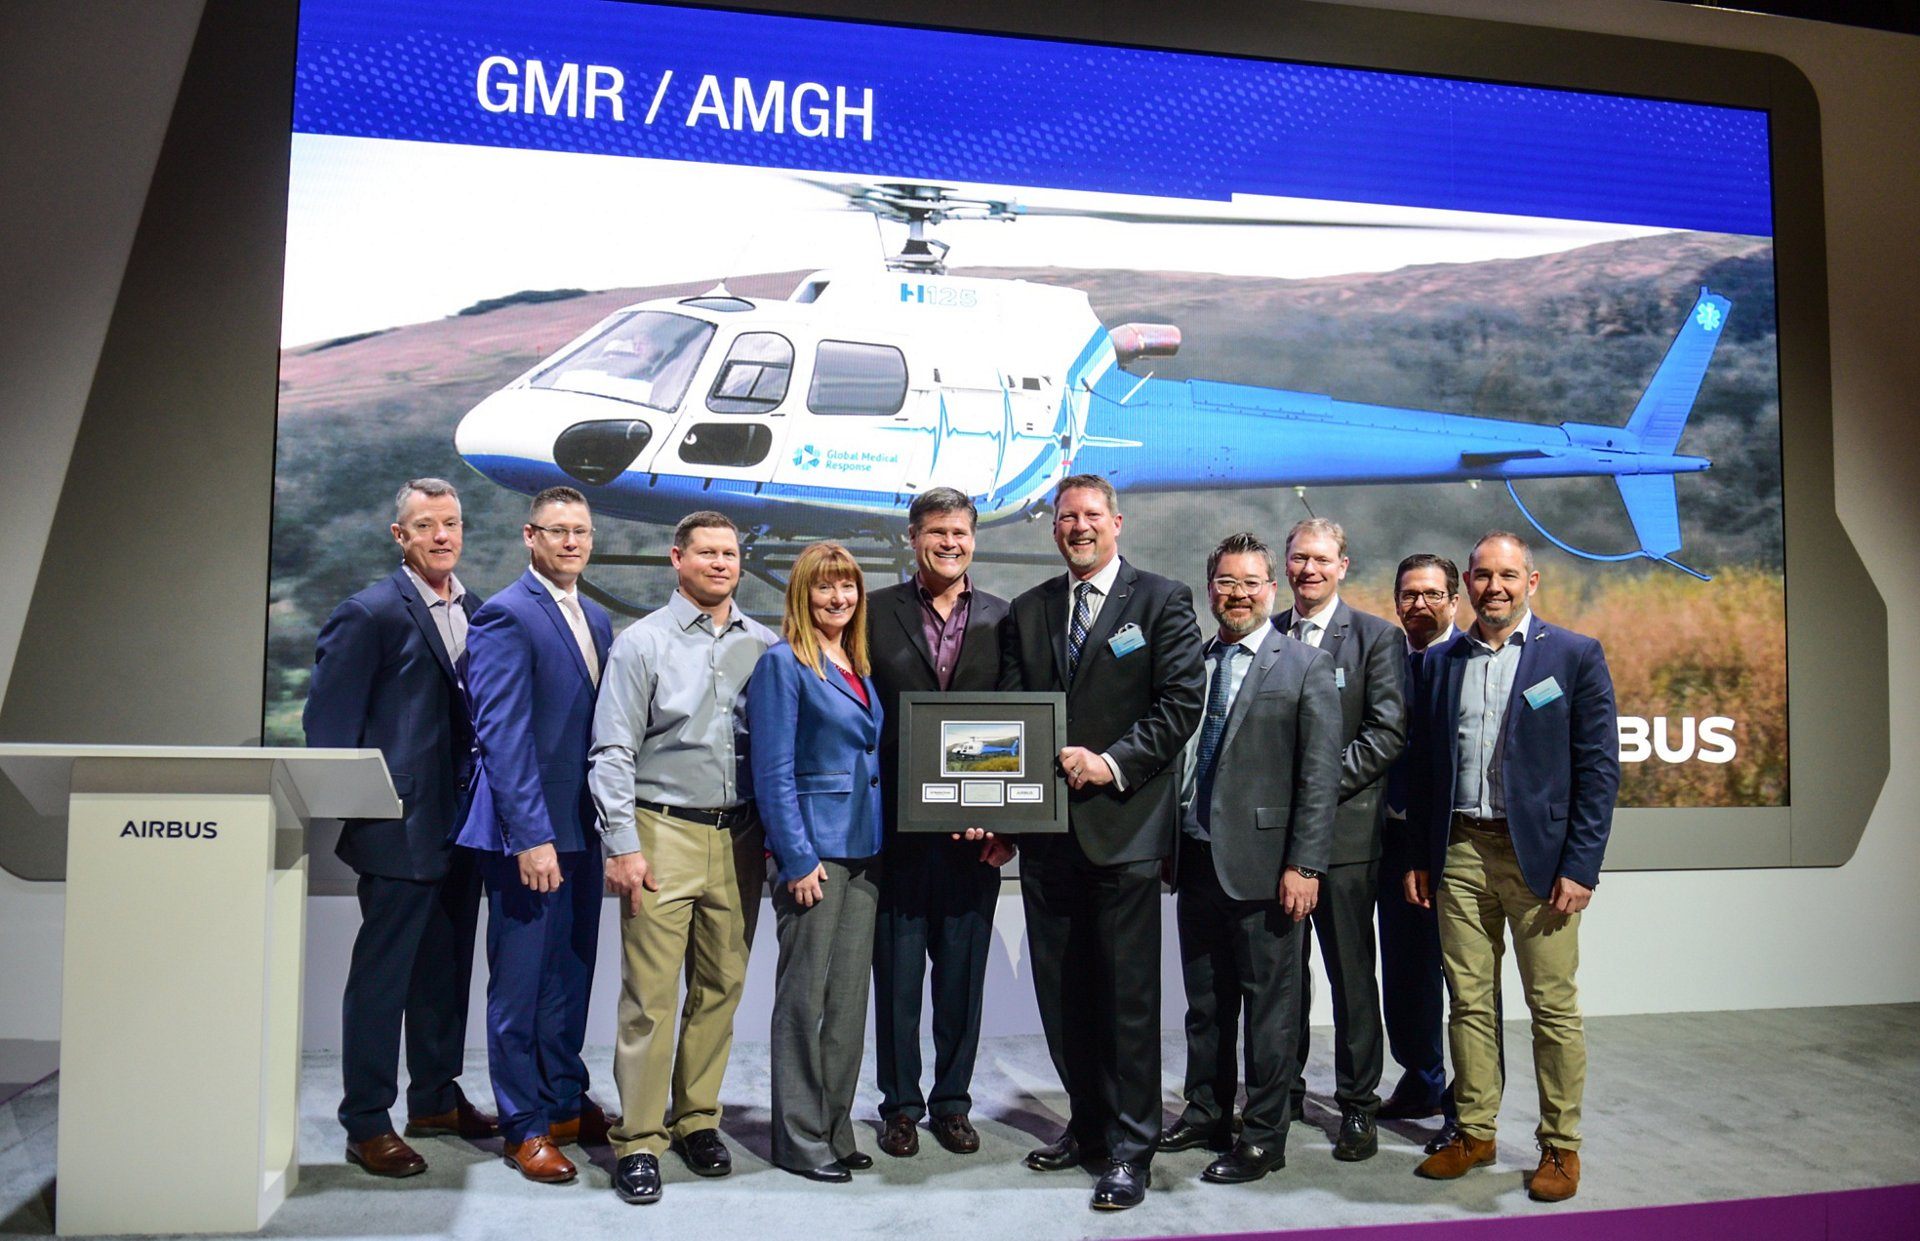 Longstanding Airbus Helicopters customer Air Medical Group Holdings (AMGH) will add a total of 21 helicopters to its fleet for air medical transport missions, announced at the Heli-Expo 2019 trade show in Atlanta.